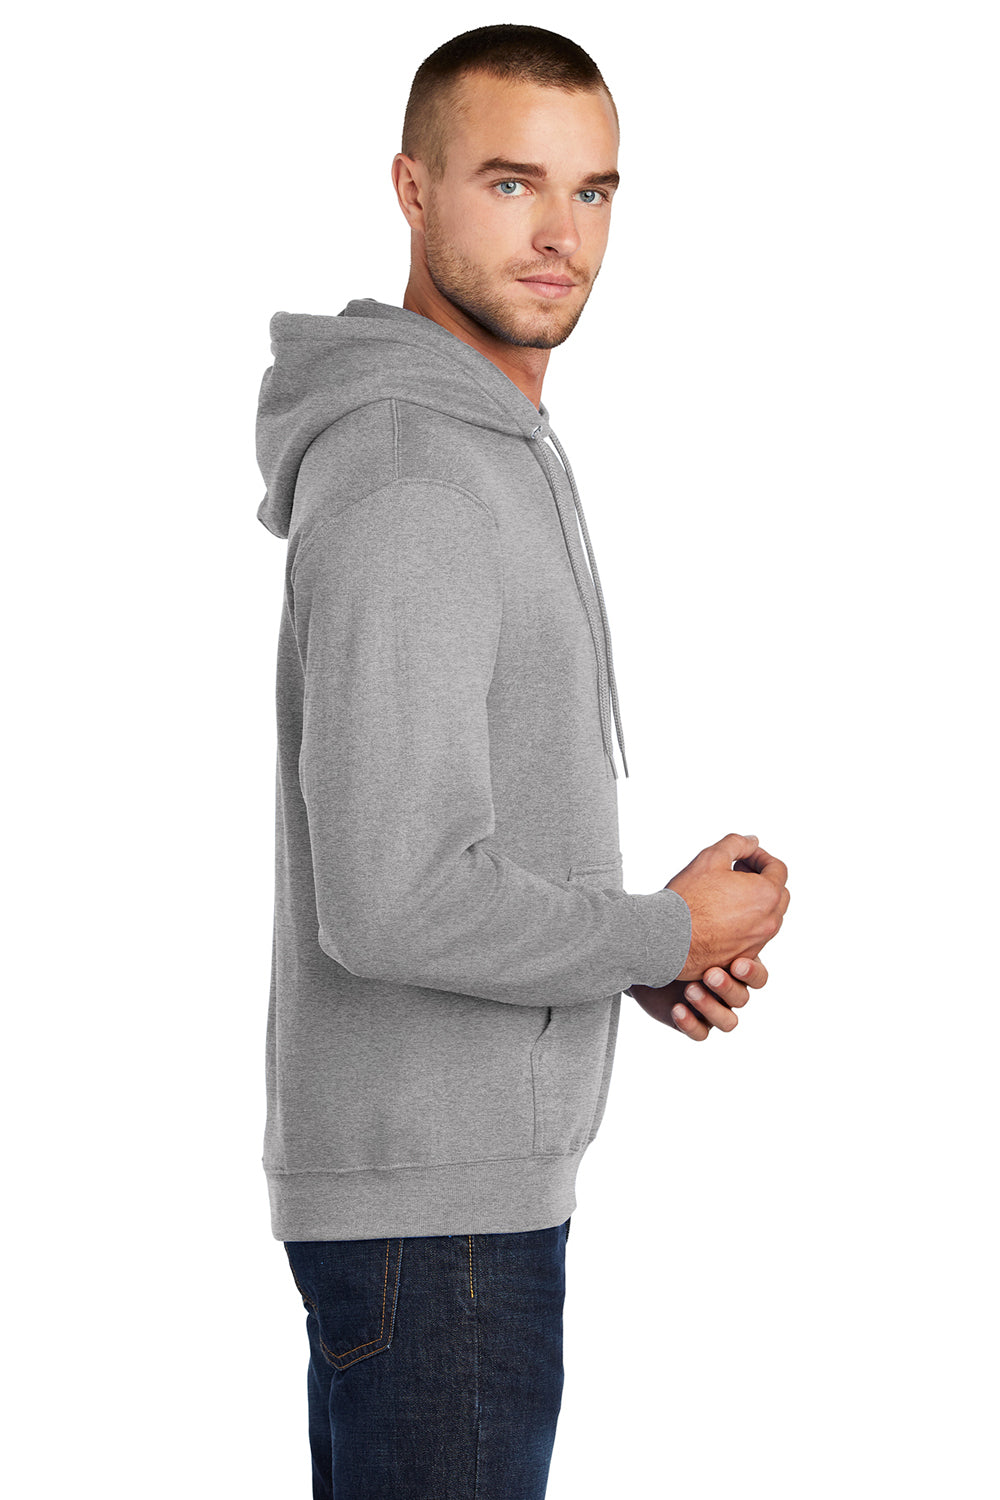 Port & Company PC78H Mens Core Fleece Hooded Sweatshirt Hoodie Heather Grey Side